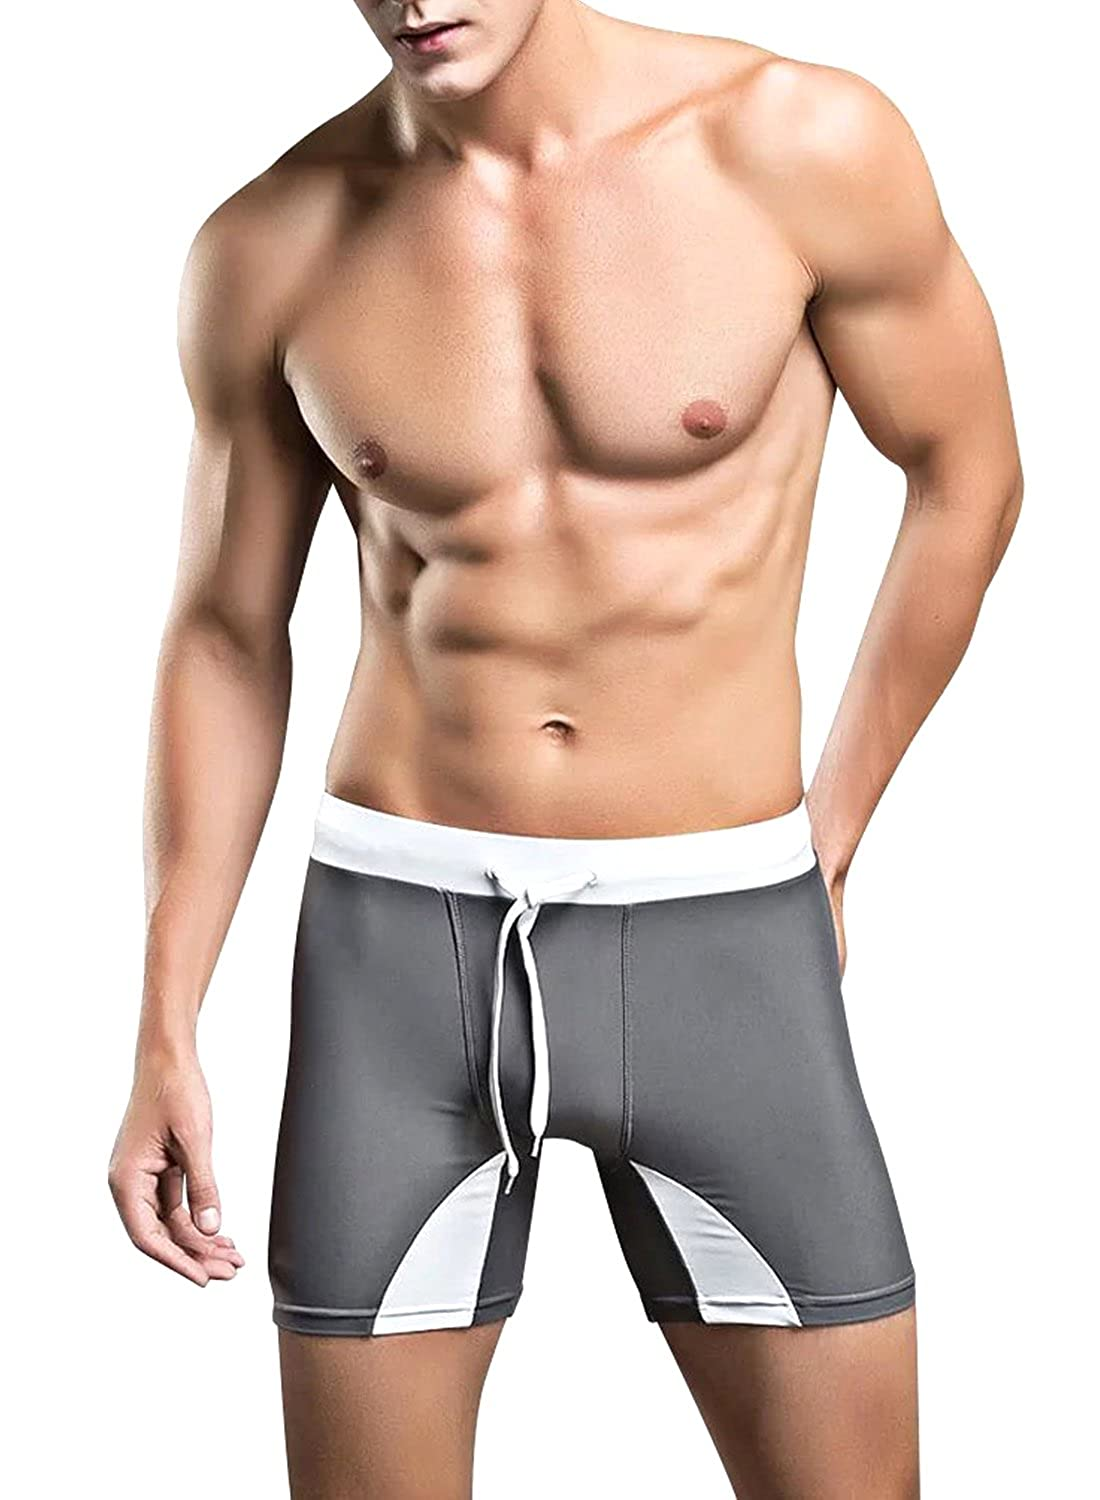 f5c437f3a7844 Amazon.com: Men's Splicing Square Cut Swimsuit Shorts with Drawstring:  Clothing